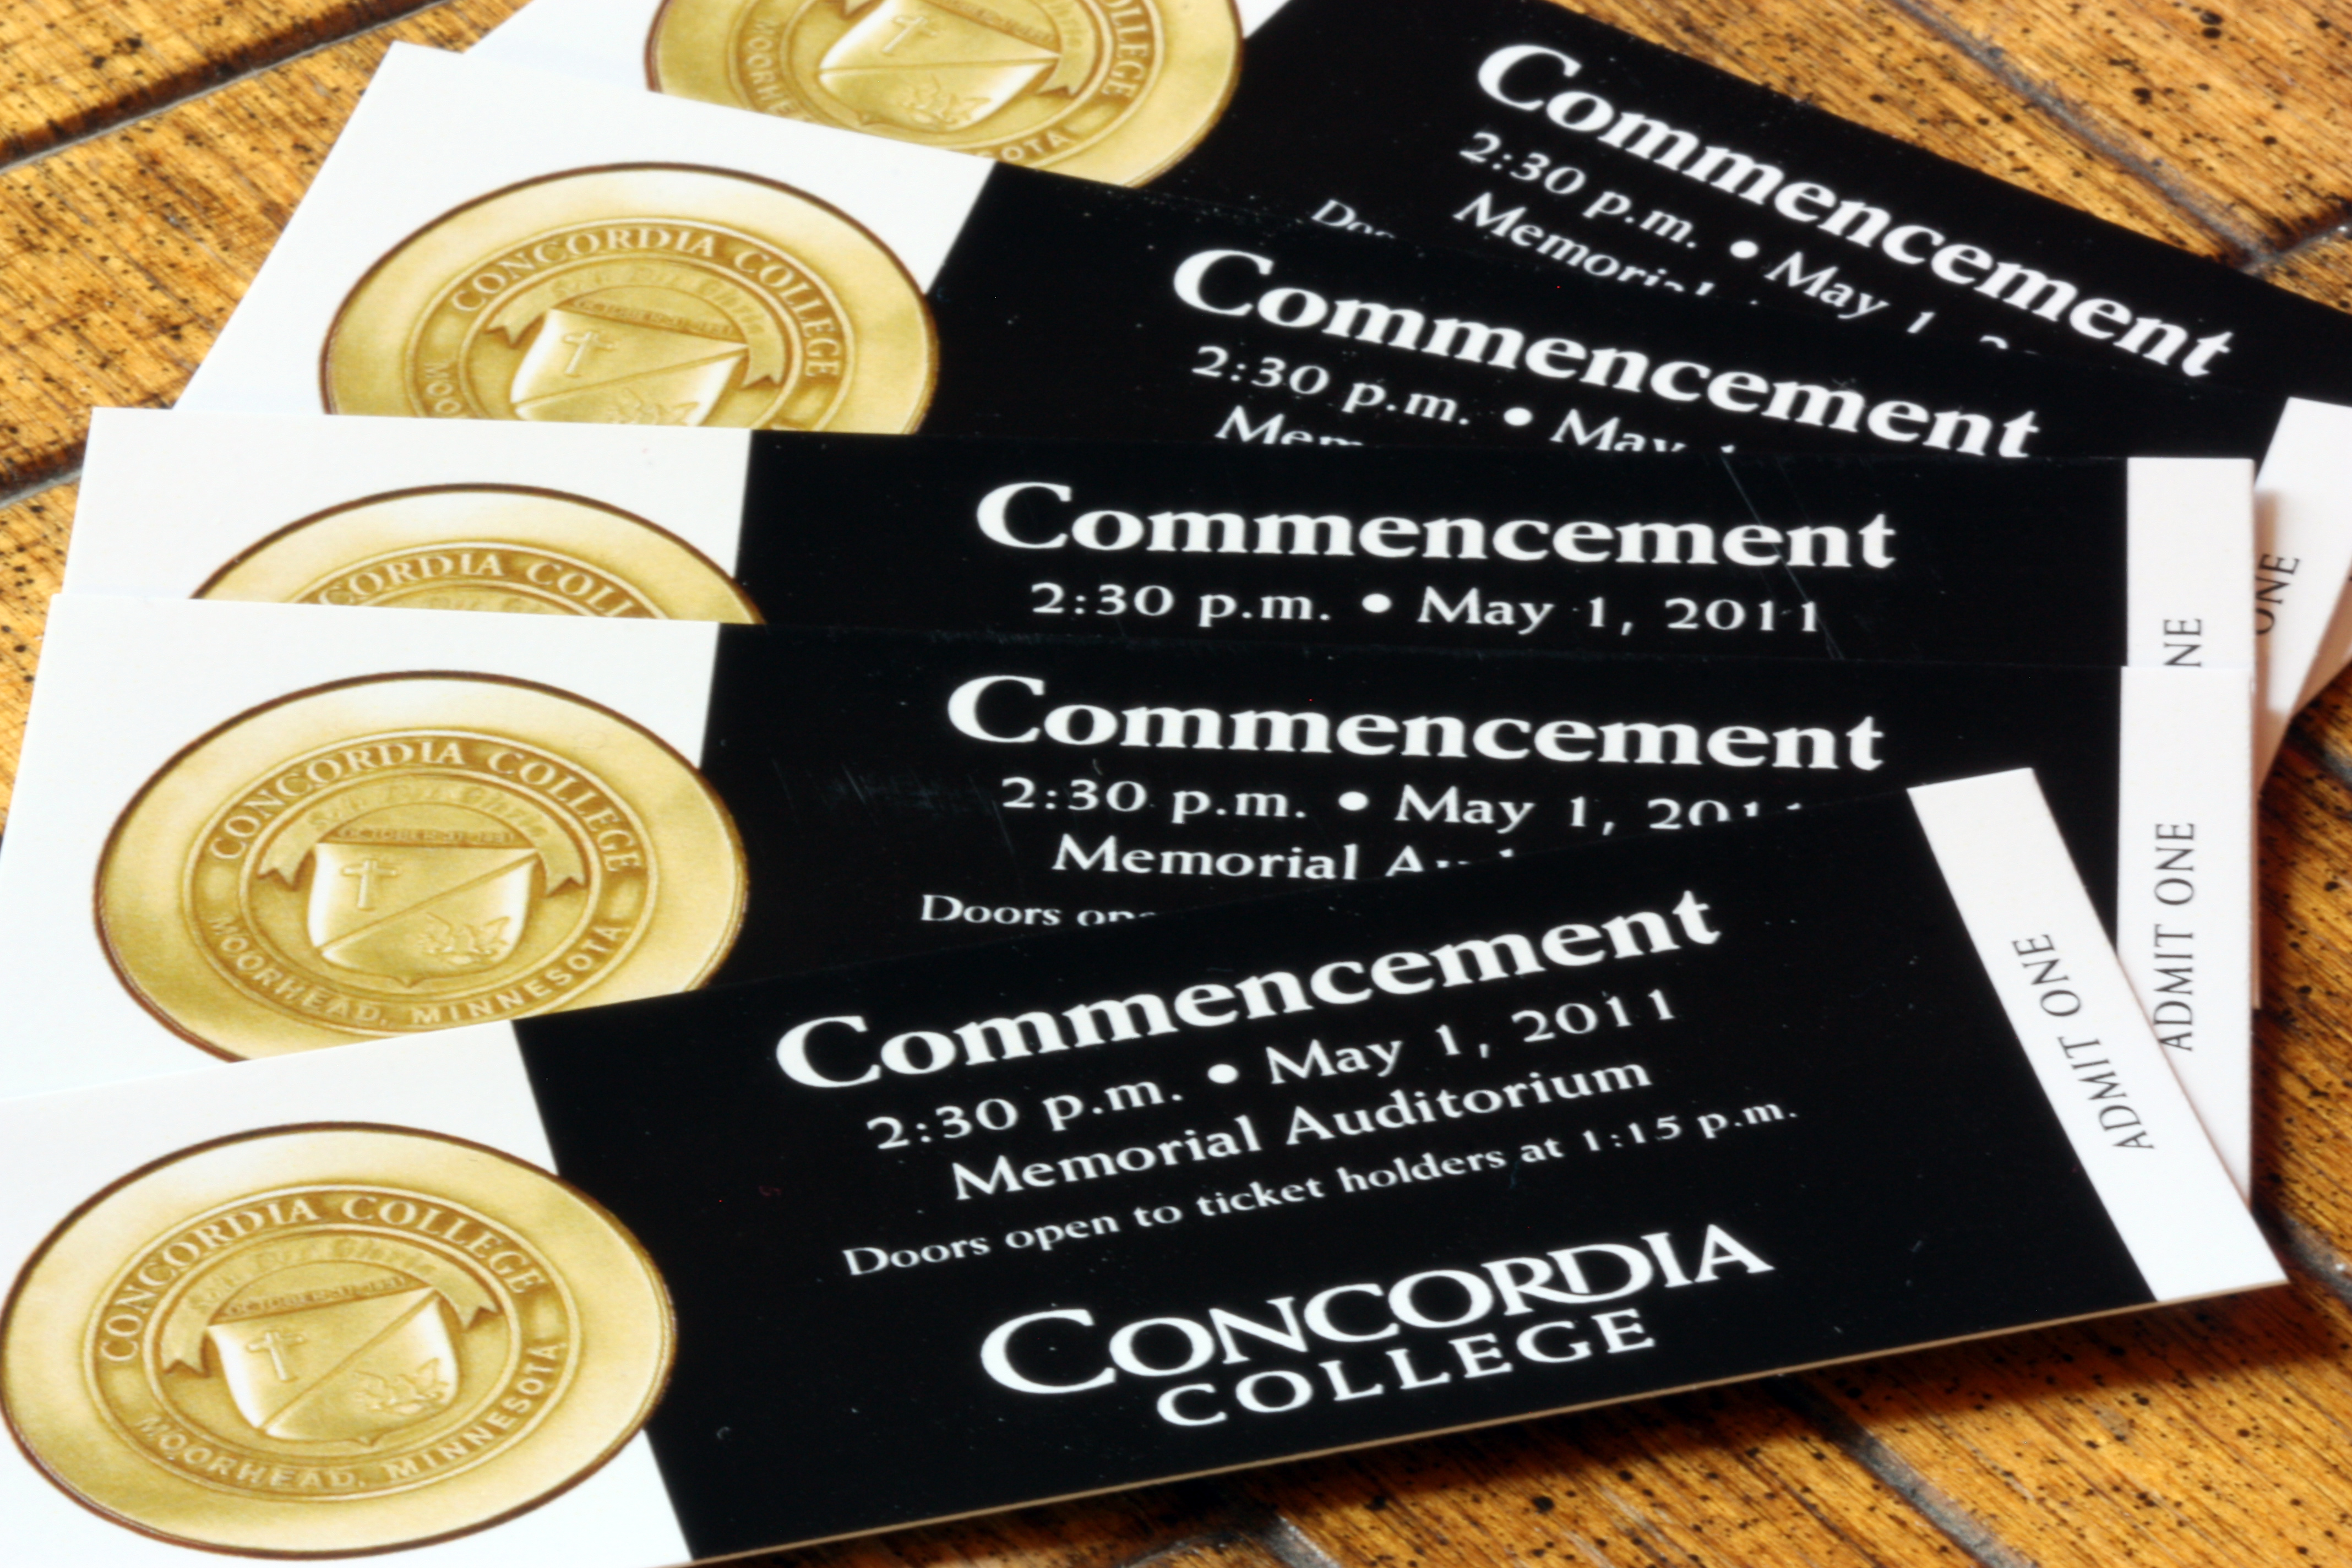 The Concordian – Commencement Tickets In High Demand For